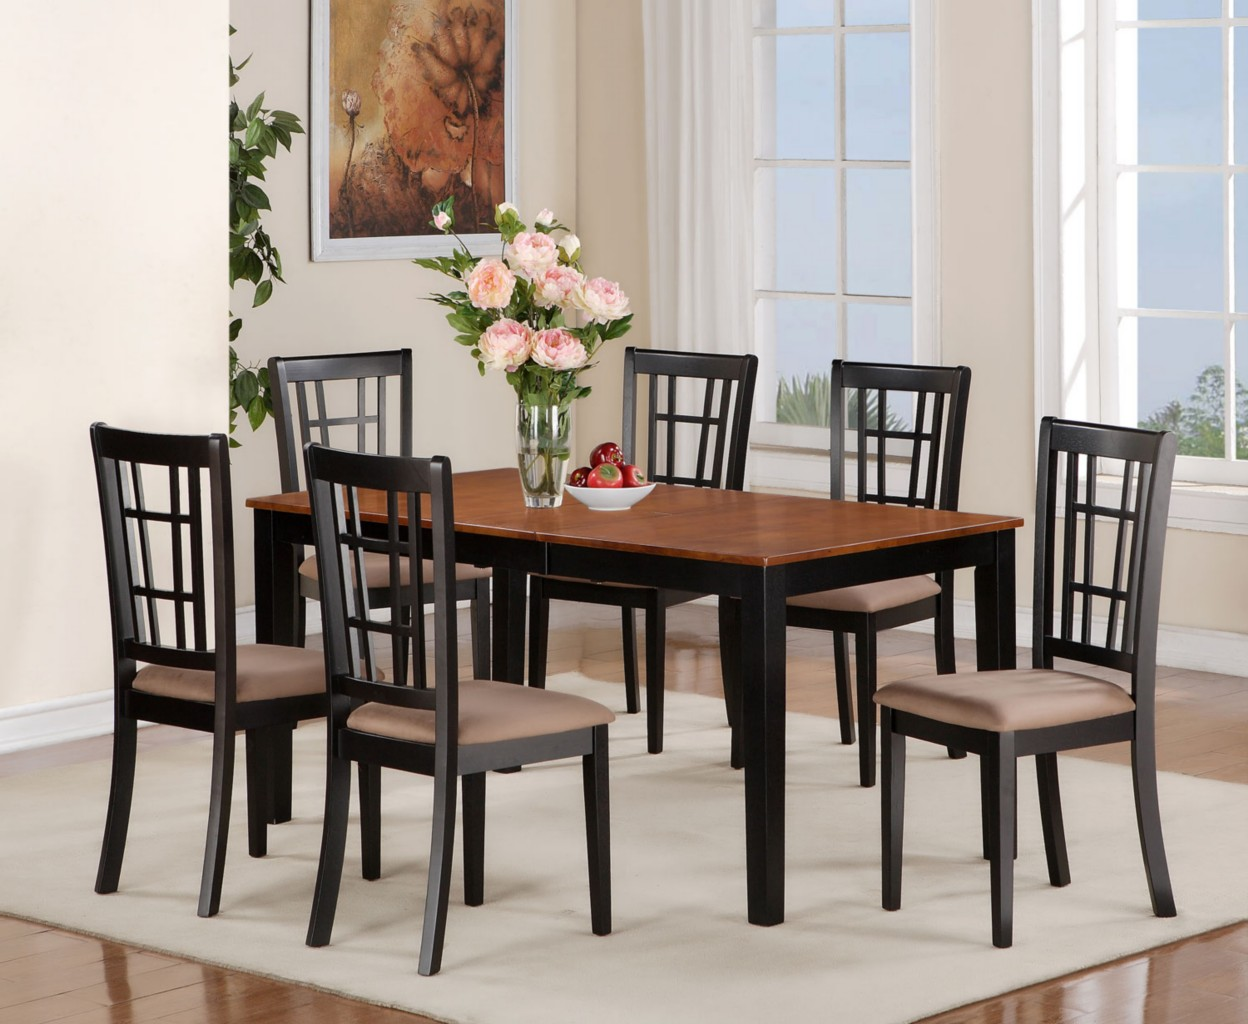 5PC DINETTE KITCHEN DINING SET RECTANGULAR TABLE  4 CHAIRS IN BLACK  CHERRY  eBay